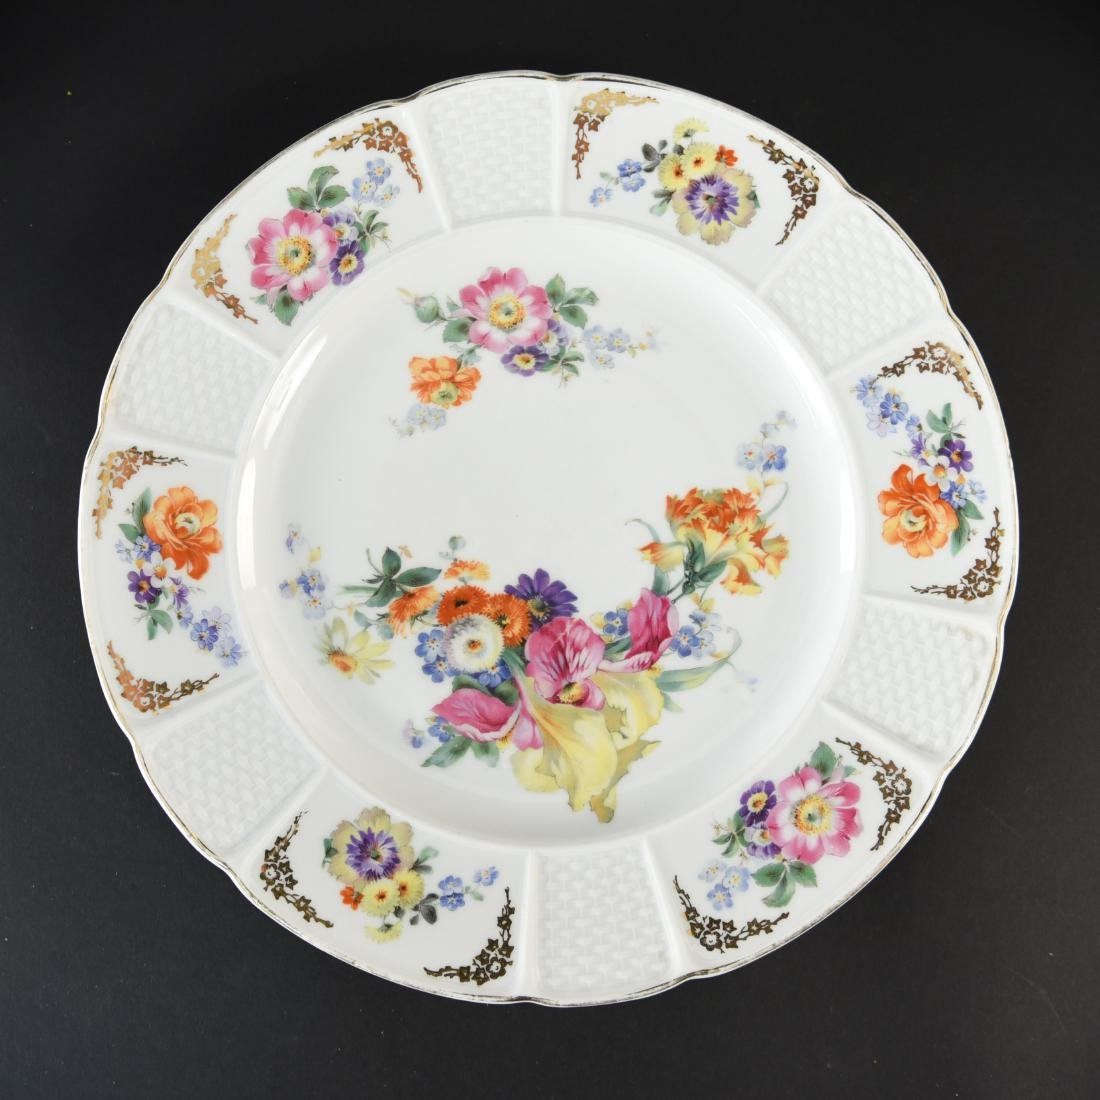 (11) ROSENTHAL FLORAL DECORATED PORCELAIN PLATES - 2